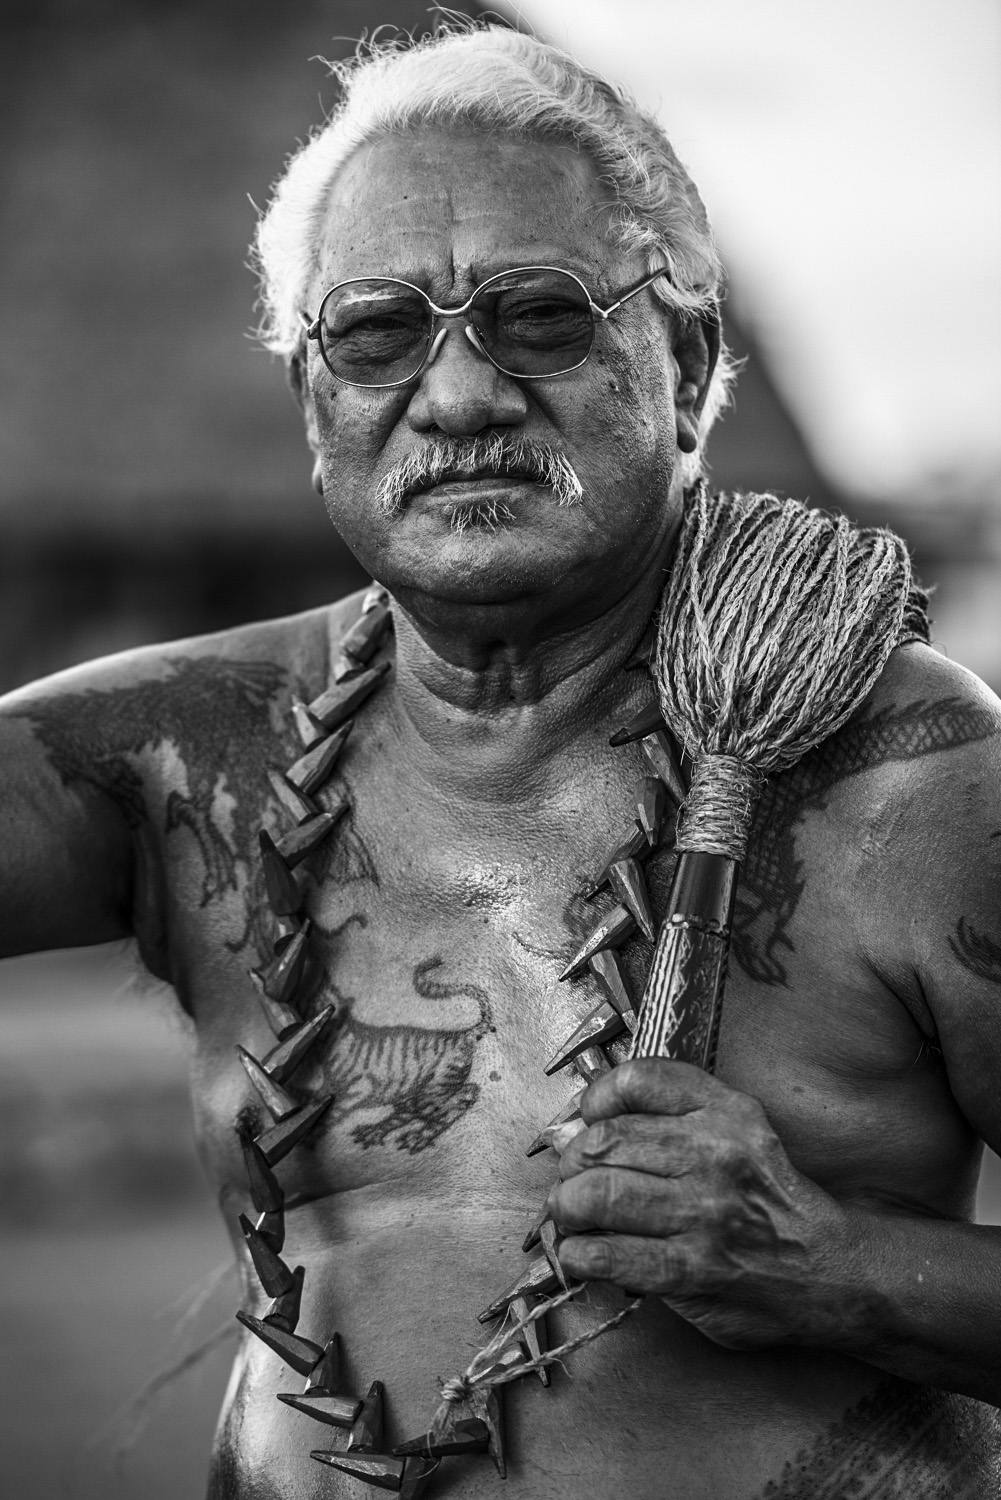 image of AARONTAIT COPYRIGHTED 2014 252 SAMOA TATAU TRADITION TATTOO PACIFIC UPOLU SAVAII CHIEFS VILLAGE FAA SAMOA PEA MALU DOCUMENTARY PHOTOGRAPHER BLACK WHITE PORTRAIT